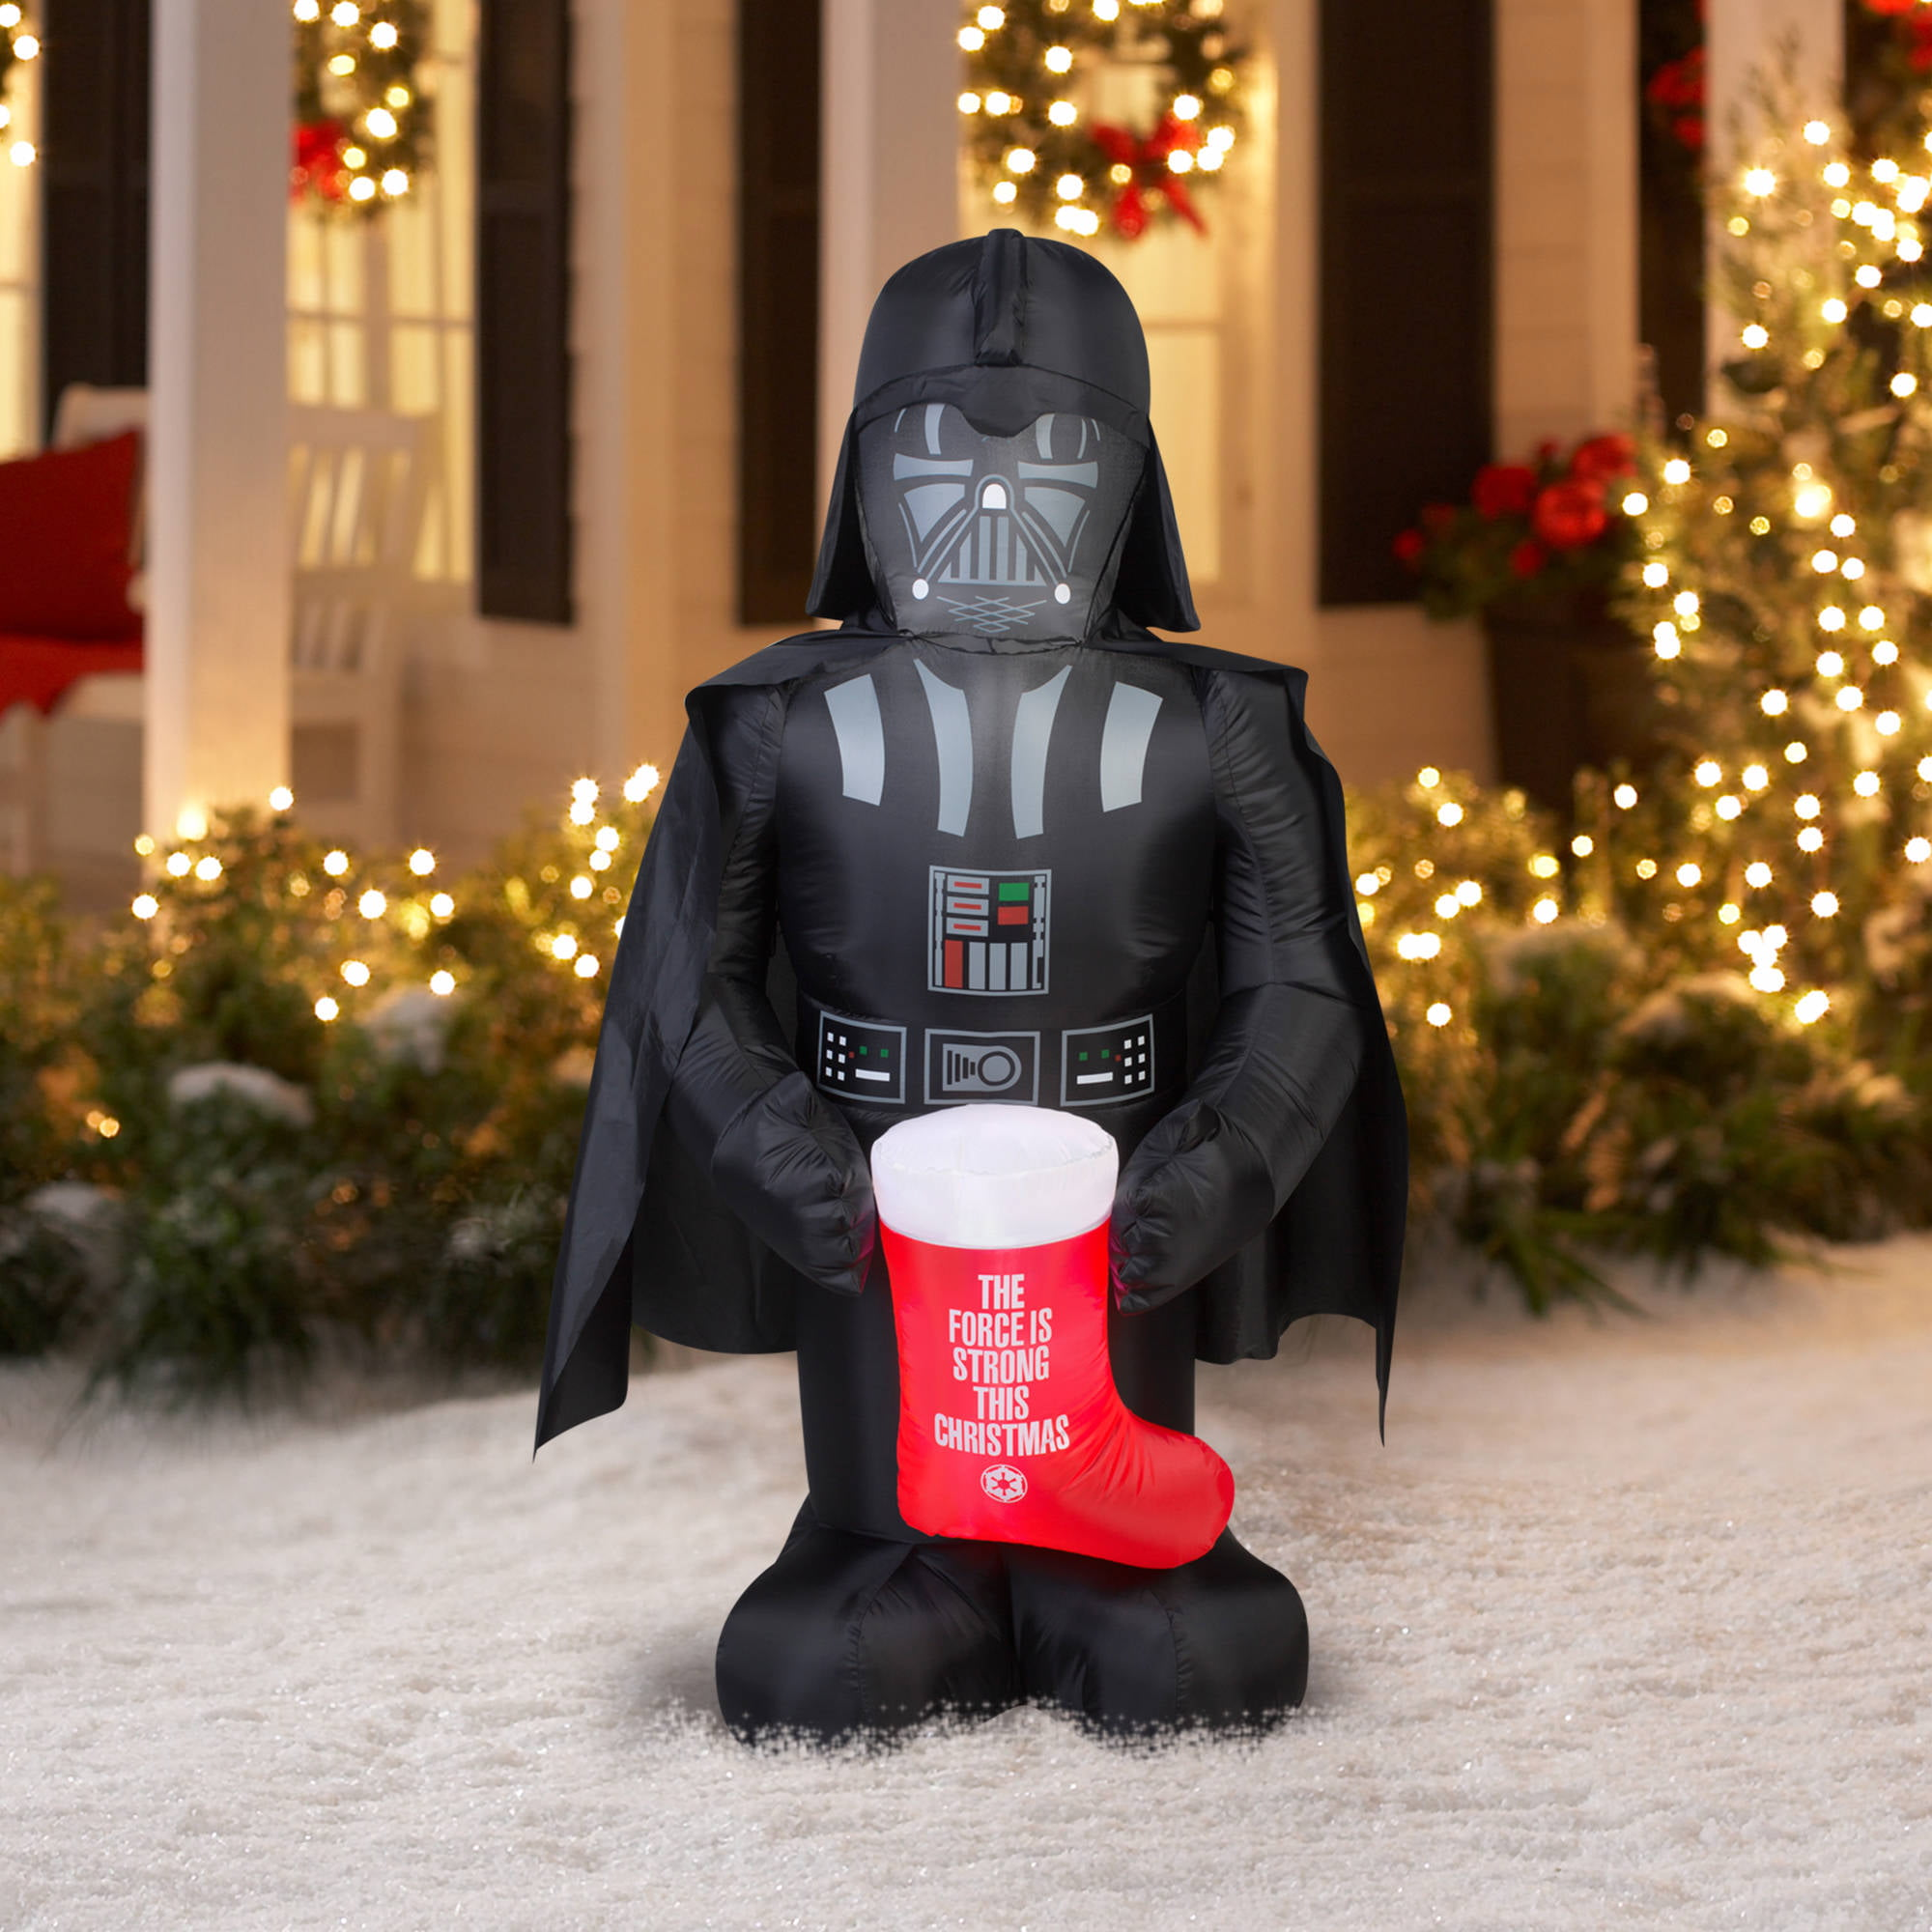 5 airblown inflatable darth vader with stocking star wars christmas inflatable walmartcom - Star Wars Blow Up Christmas Decorations